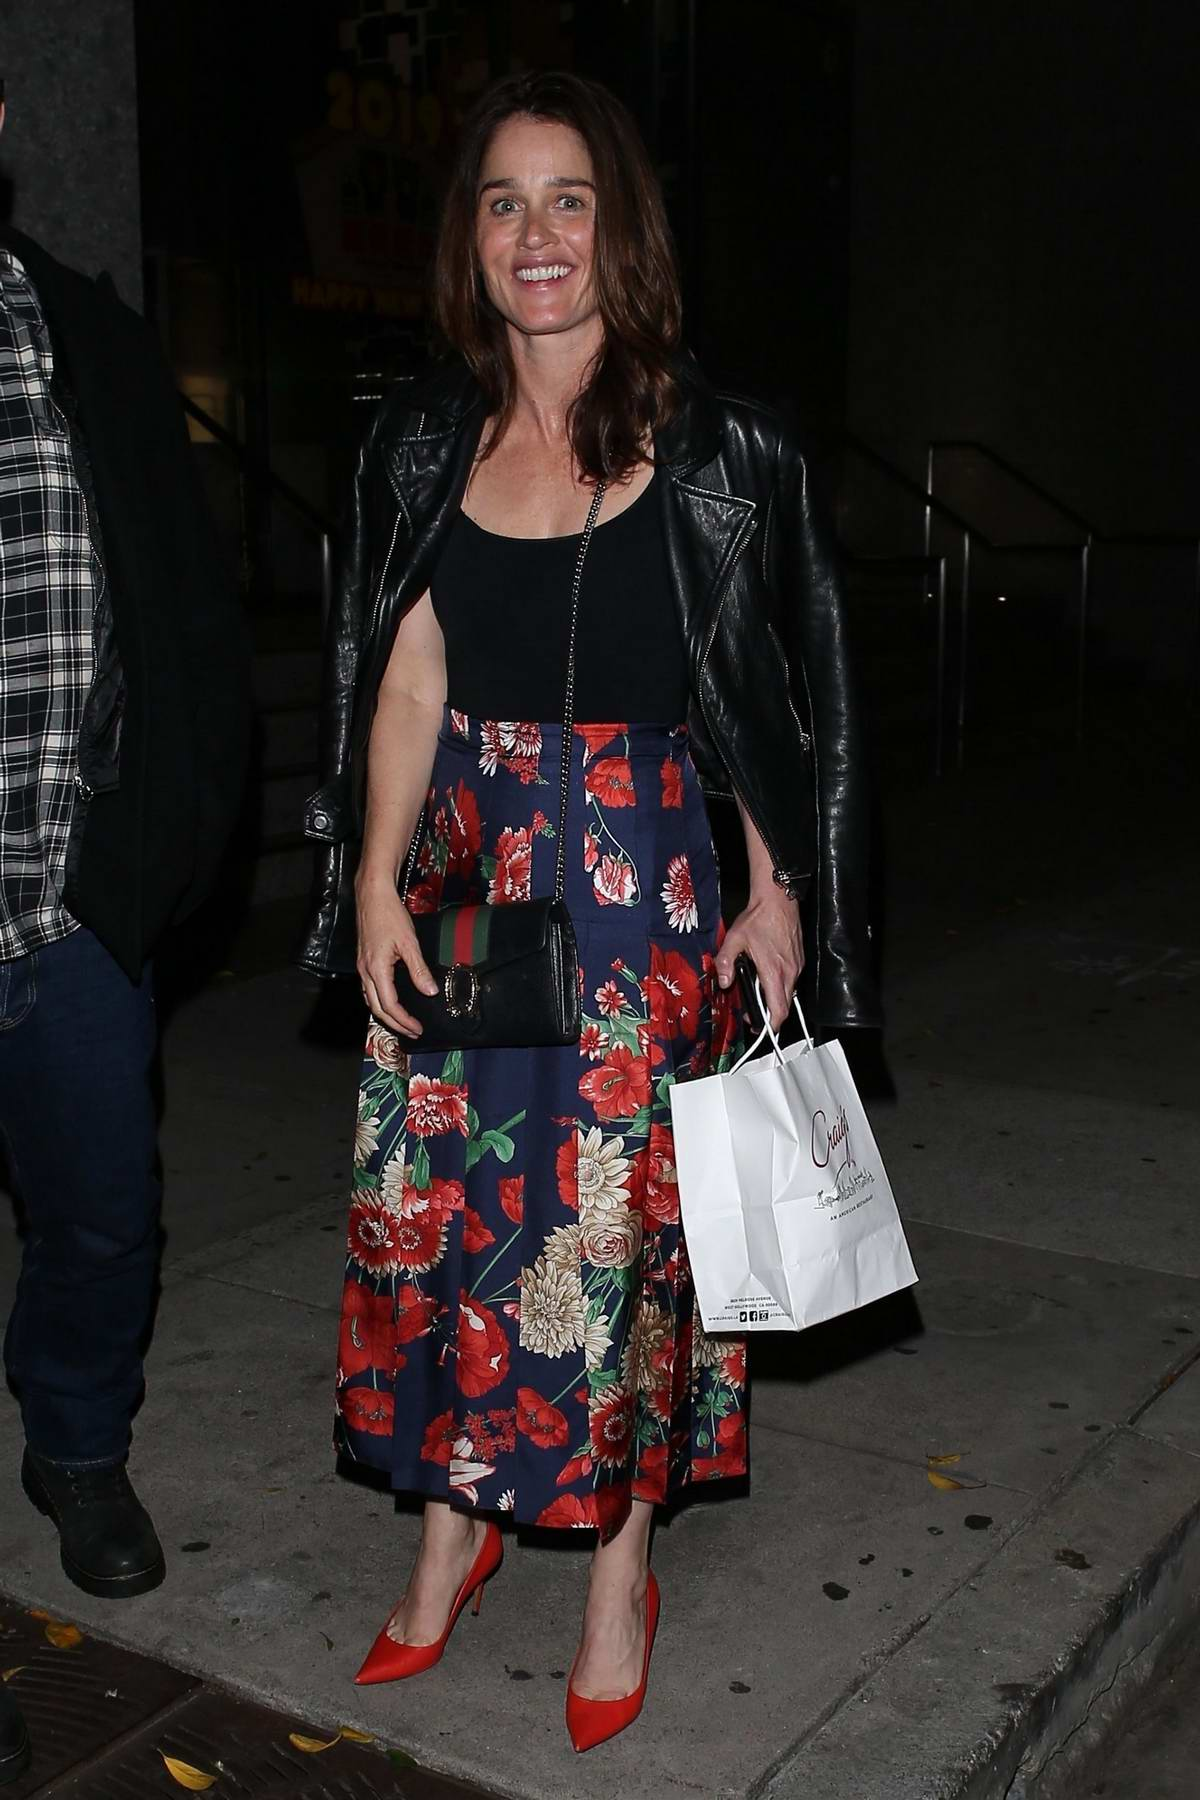 Robin Tunney seen leaving Craig's restaurant after a dinner outing in West Hollywood, Los Angeles